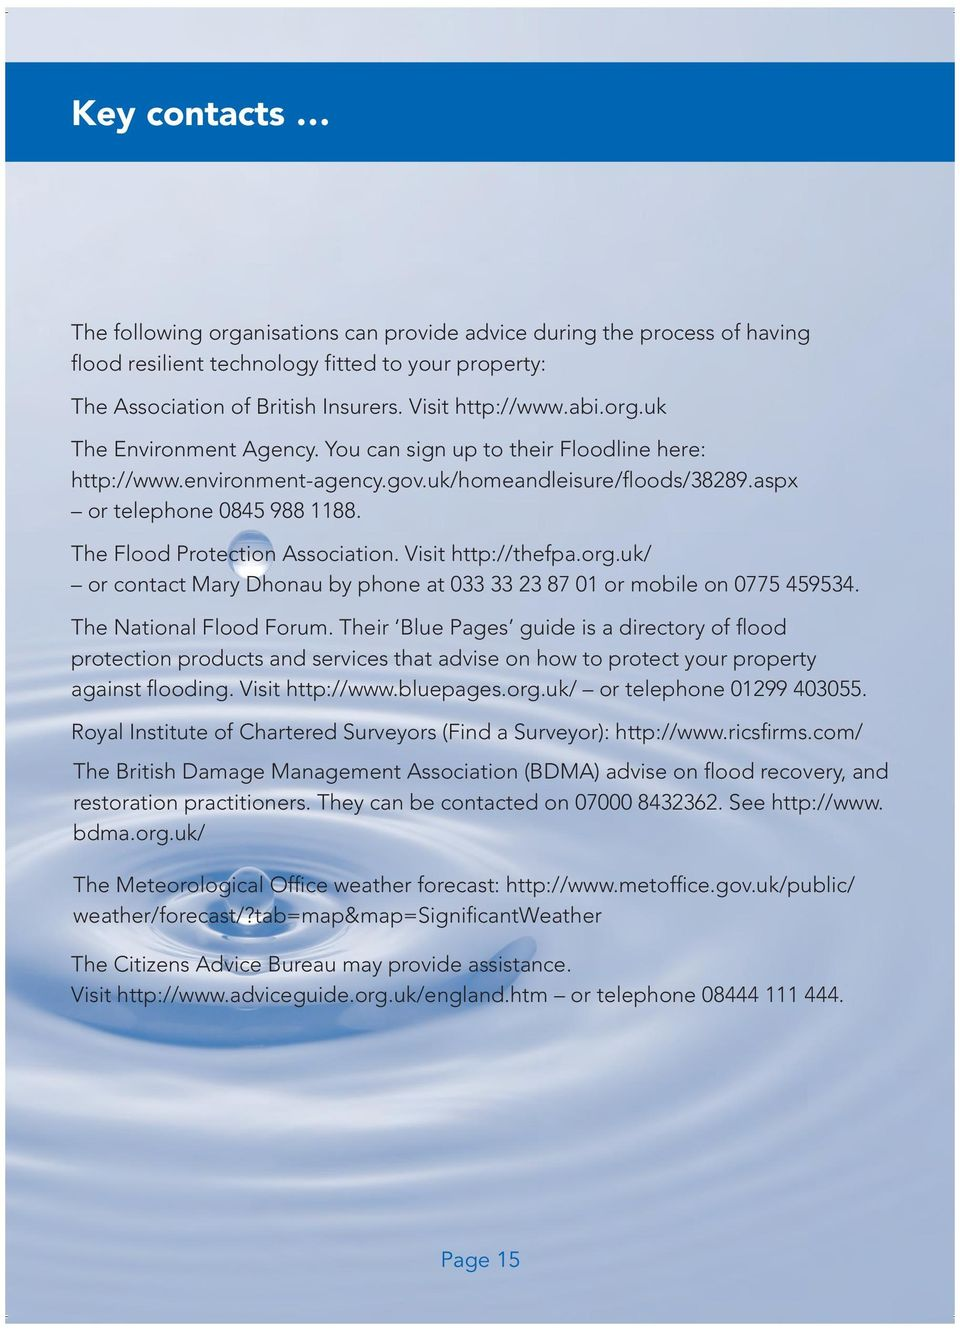 The Flood Protection Association. Visit http://thefpa.org.uk/ or contact Mary Dhonau by phone at 033 33 23 87 01 or mobile on 0775 459534. The National Flood Forum.